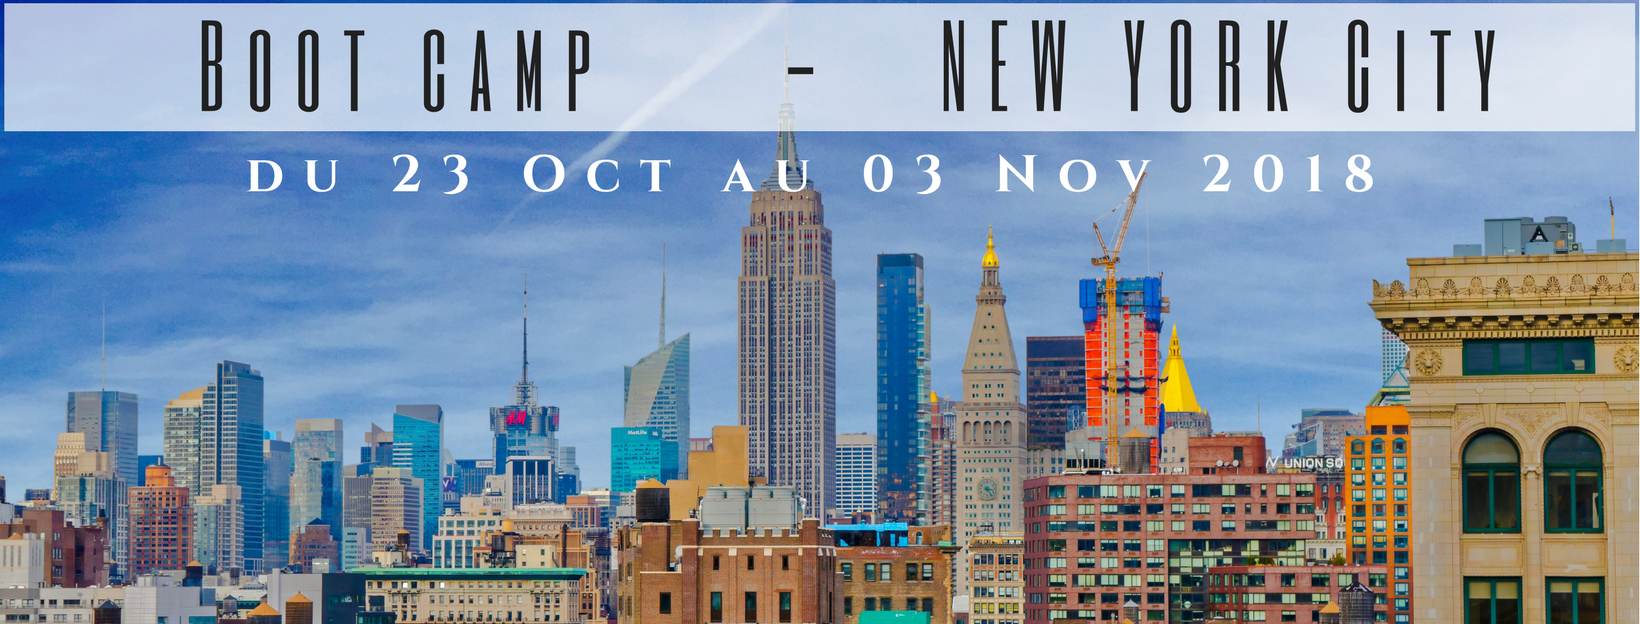 Bootcamp New York 2018